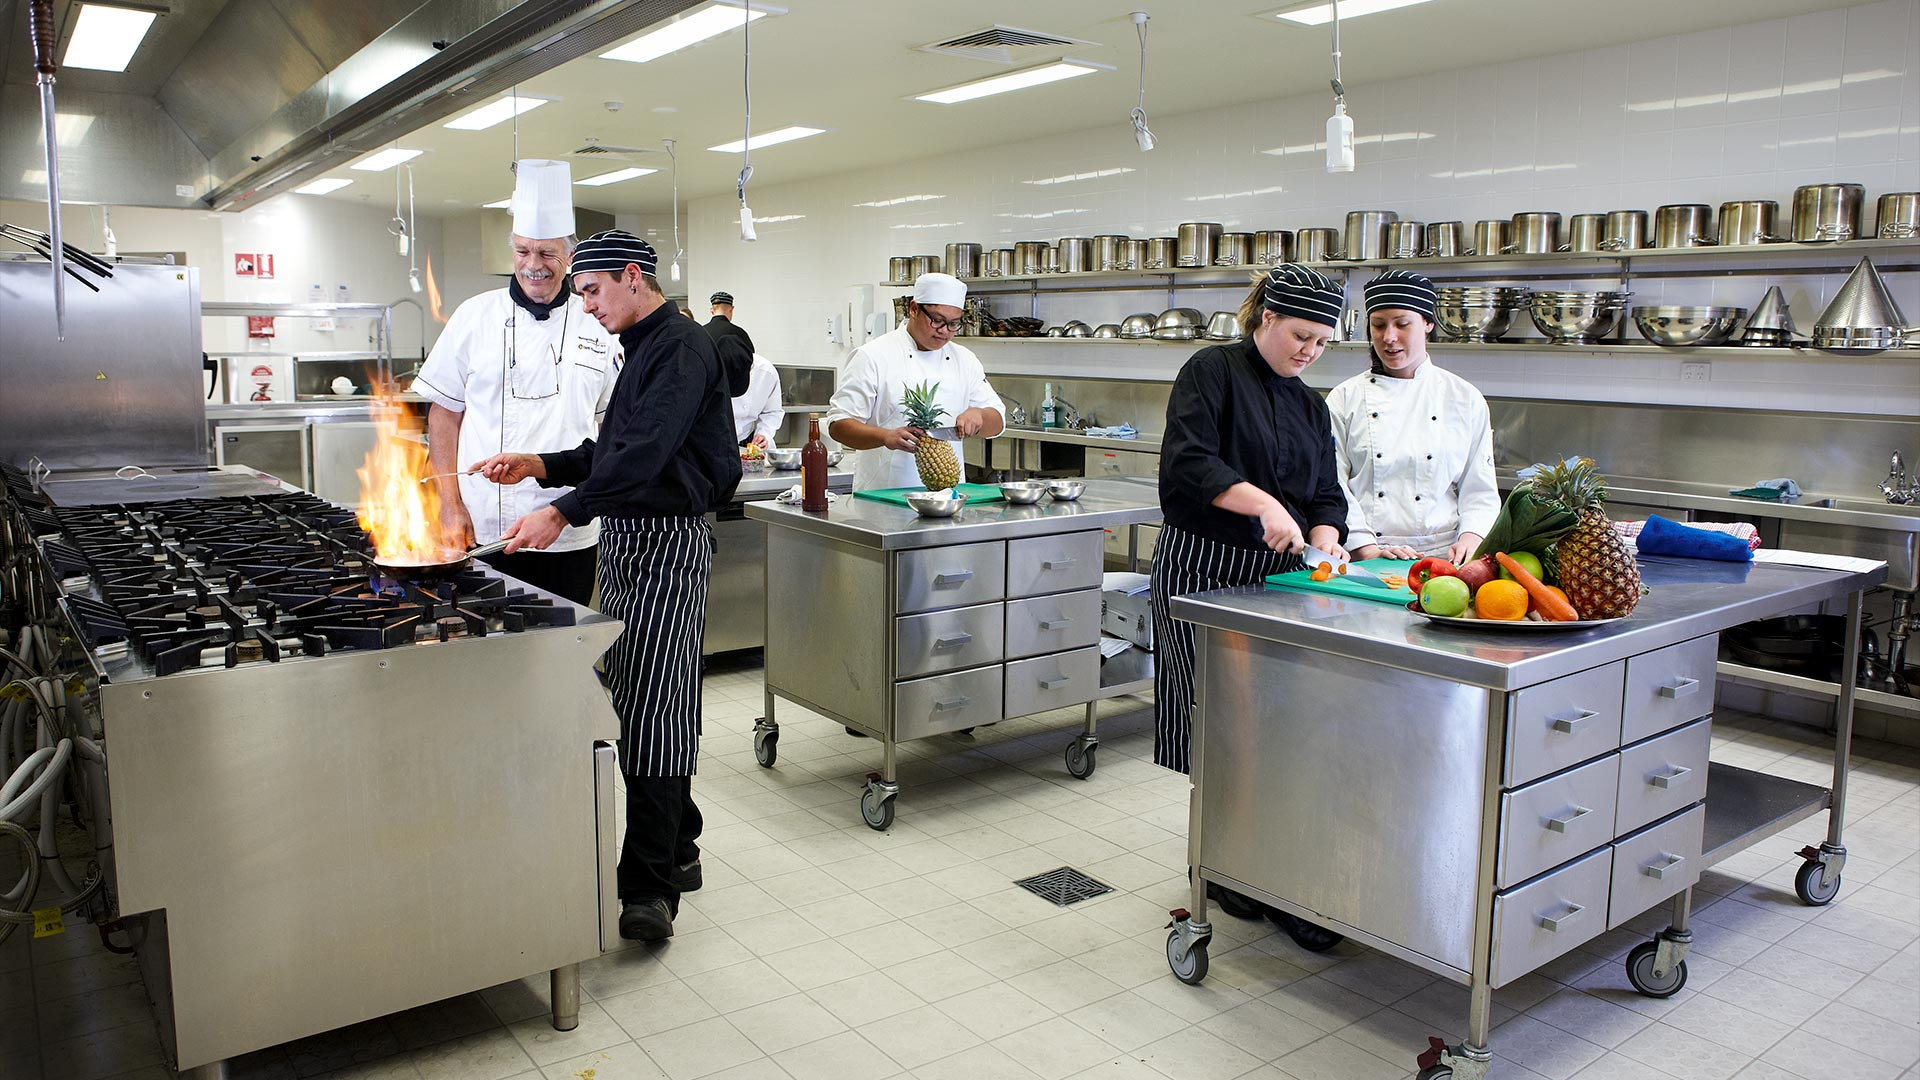 loganlea-facilities-hospitality-hubs-commericial-kitchens-01.jpg